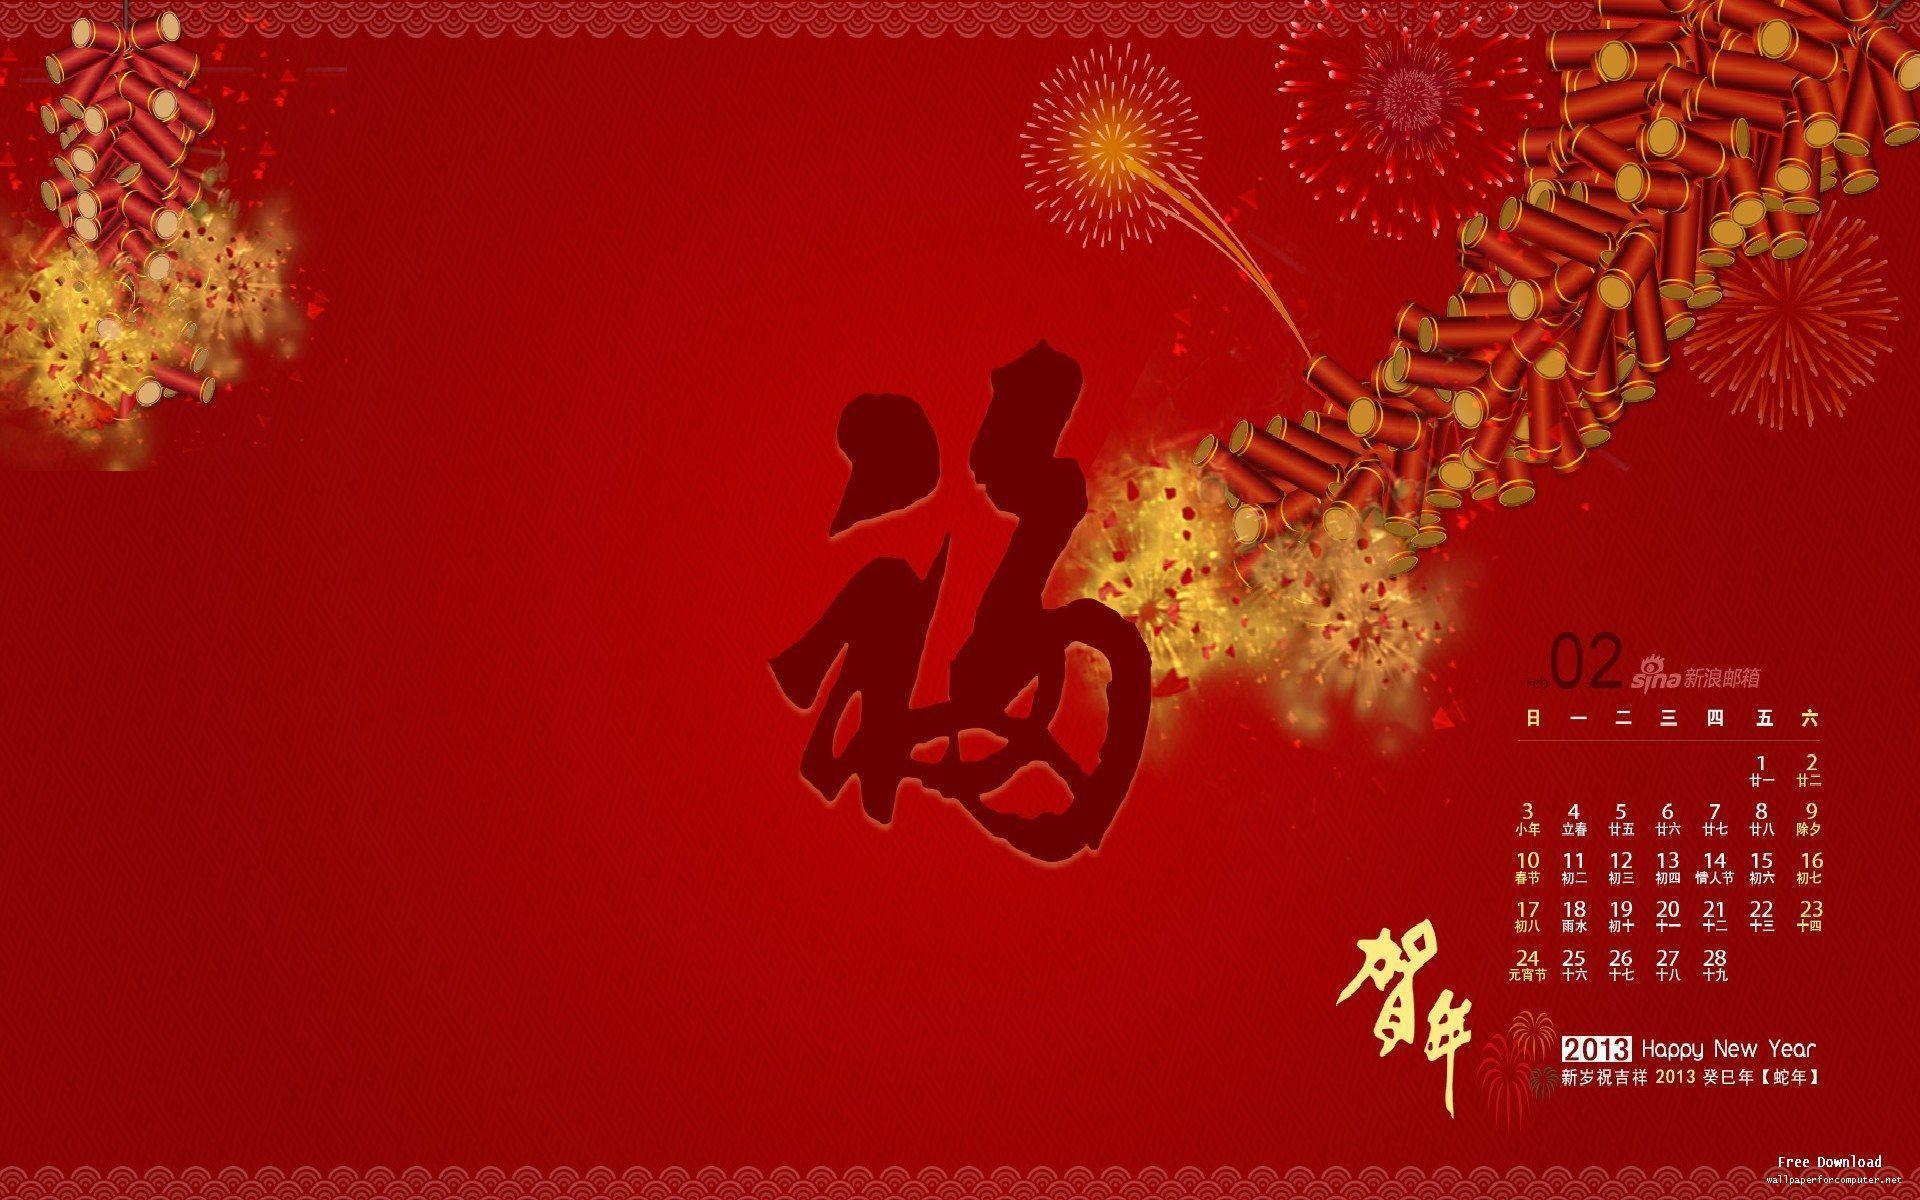 Chinese New Year Wallpapers - Top Free Chinese New Year